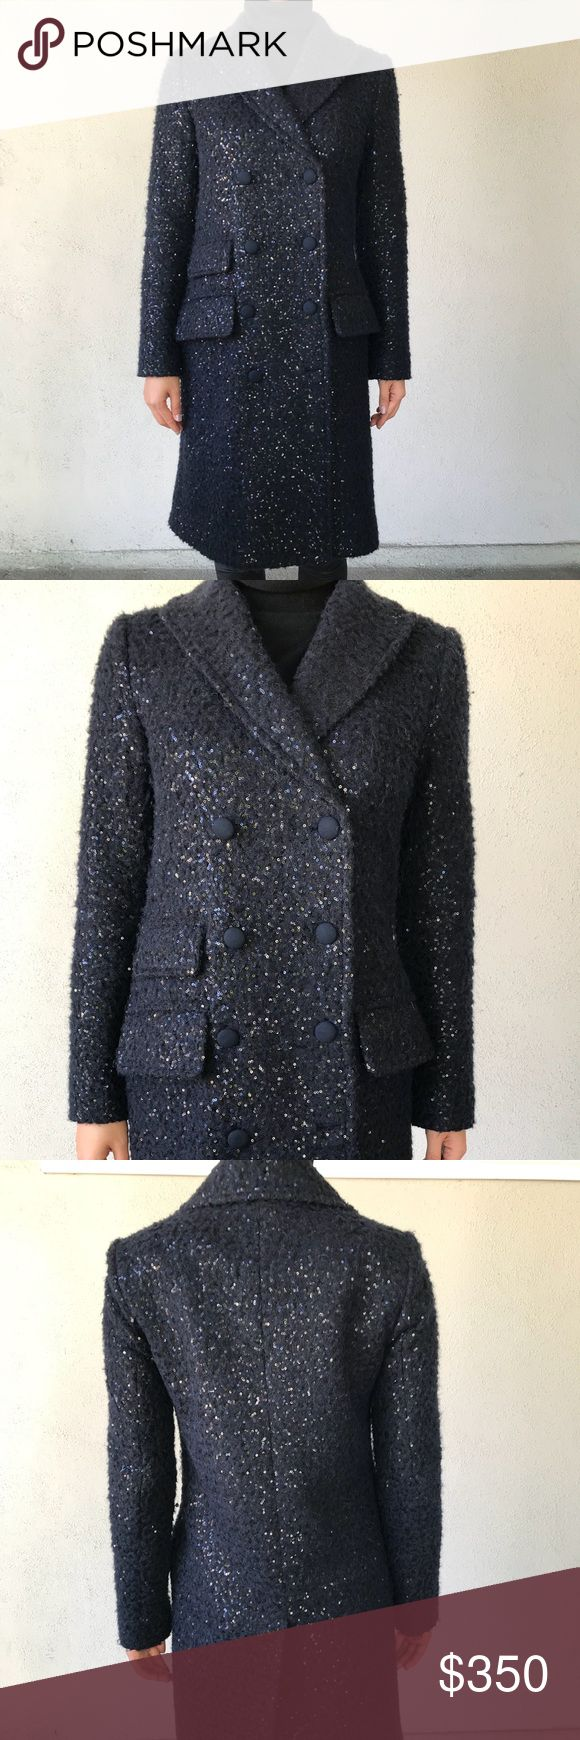 Diane Von Furstenberg Wool/Cashmere Sequin Coat Diane Von Furstenberg Wool/Cashmere Sequin Long Coat. Elegant navy color accented with sequin. Very light weight but super warm. Received so many compliments on this coat. Size 0. Diane Von Furstenberg Jackets & Coats